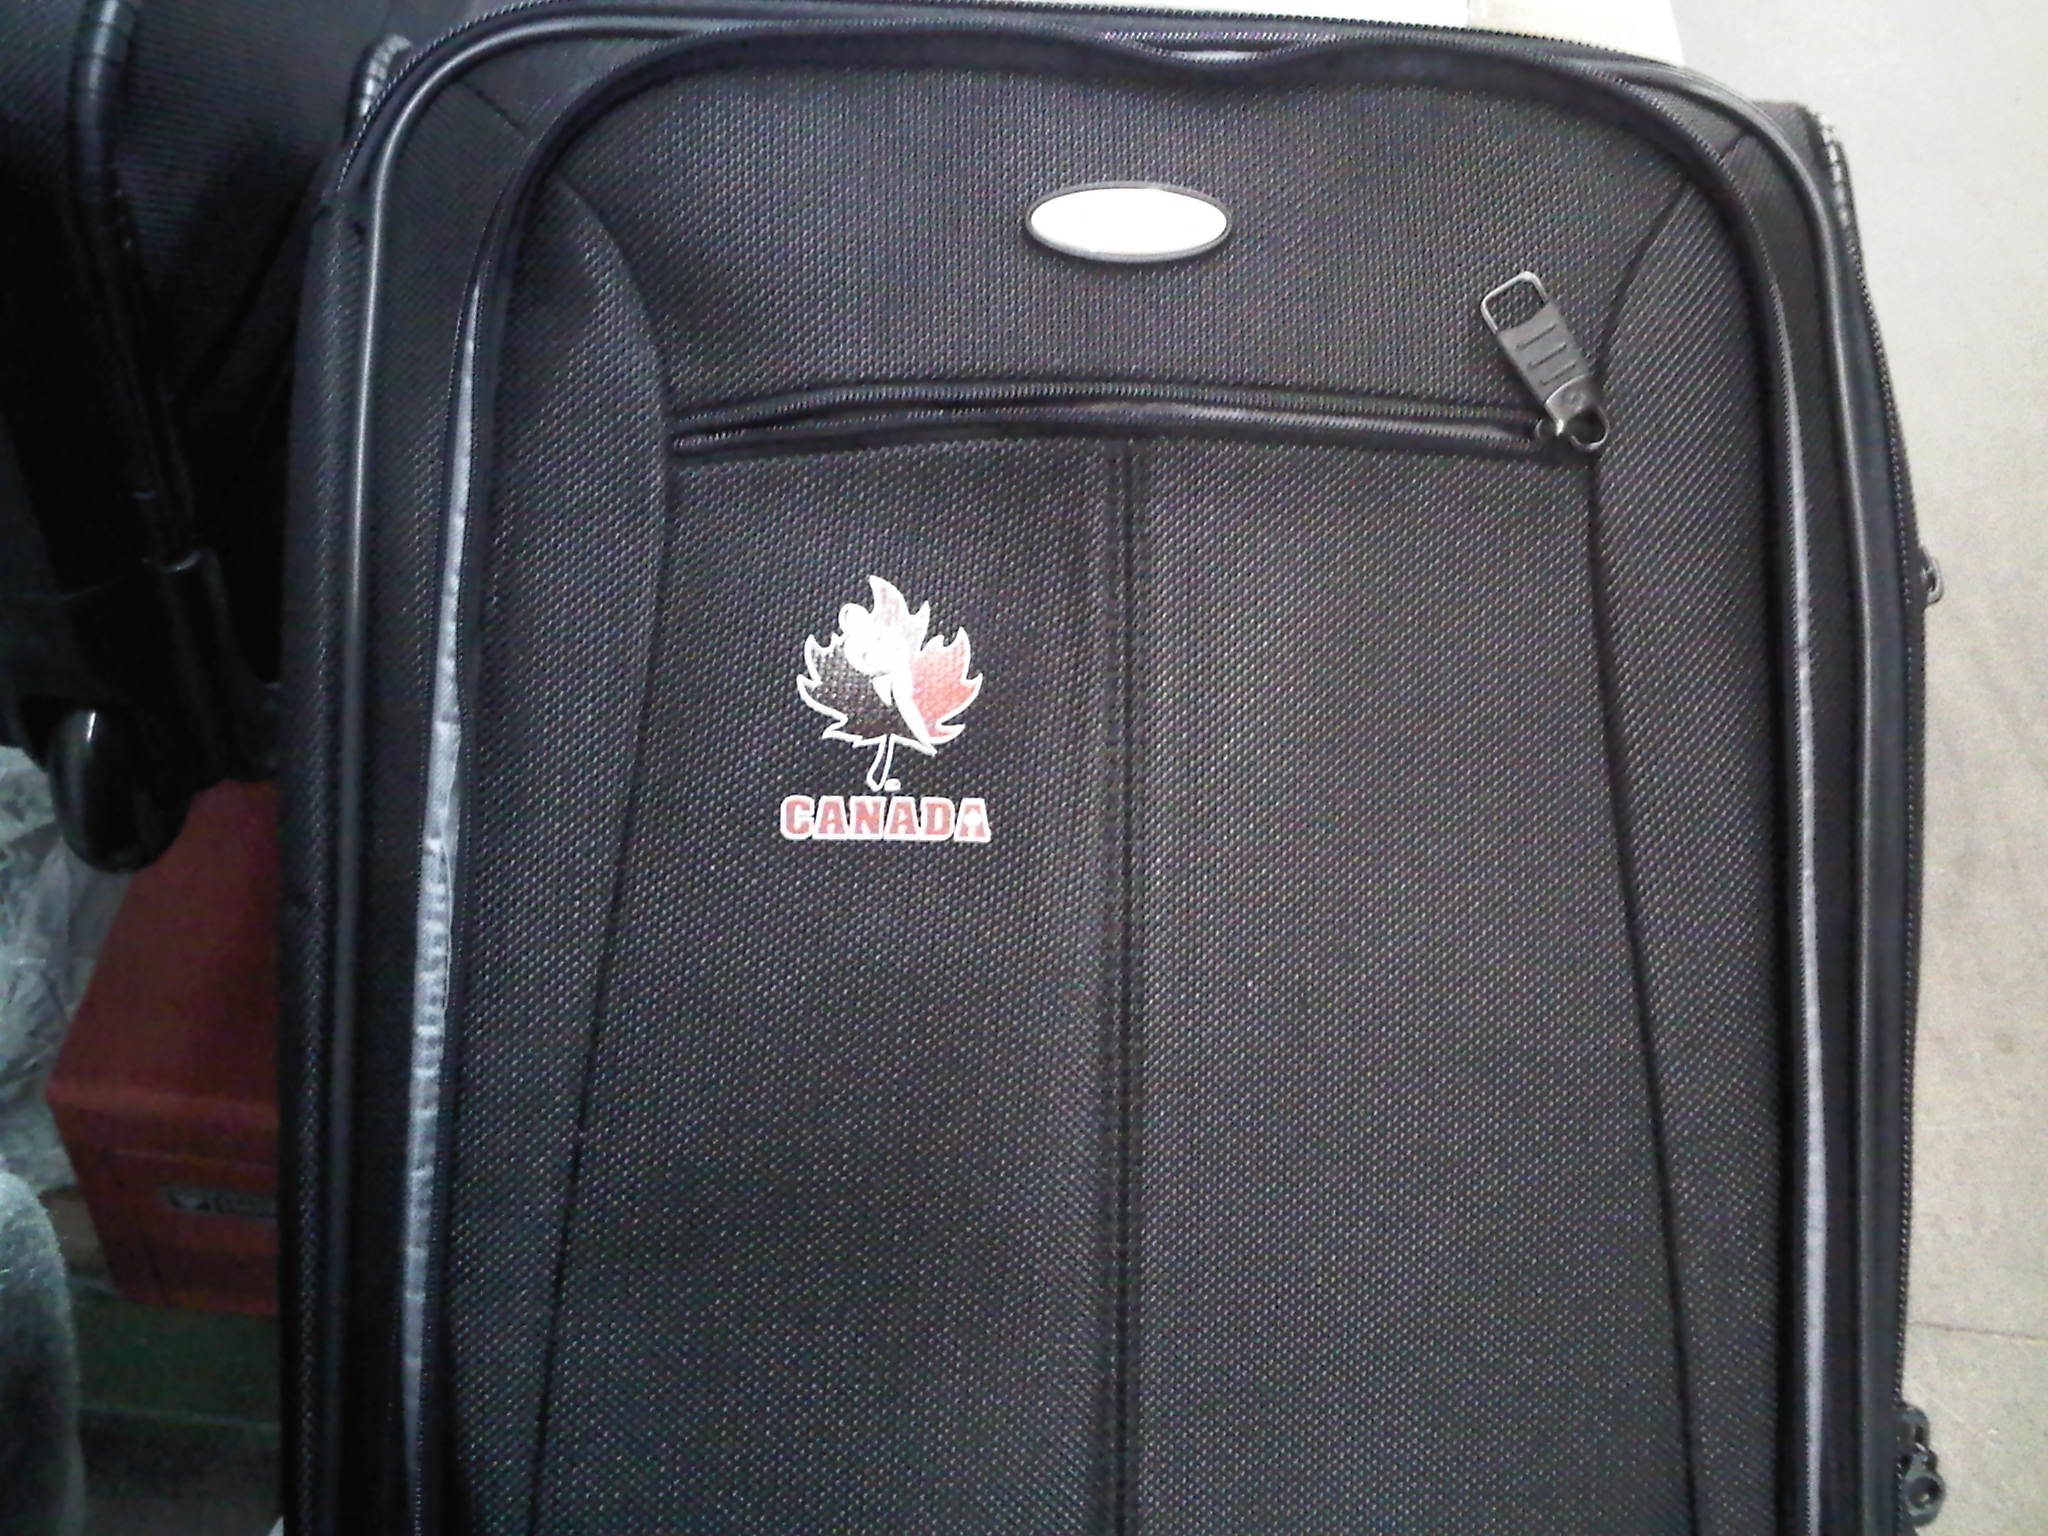 2010 rugby samsonite small luggage.jpg